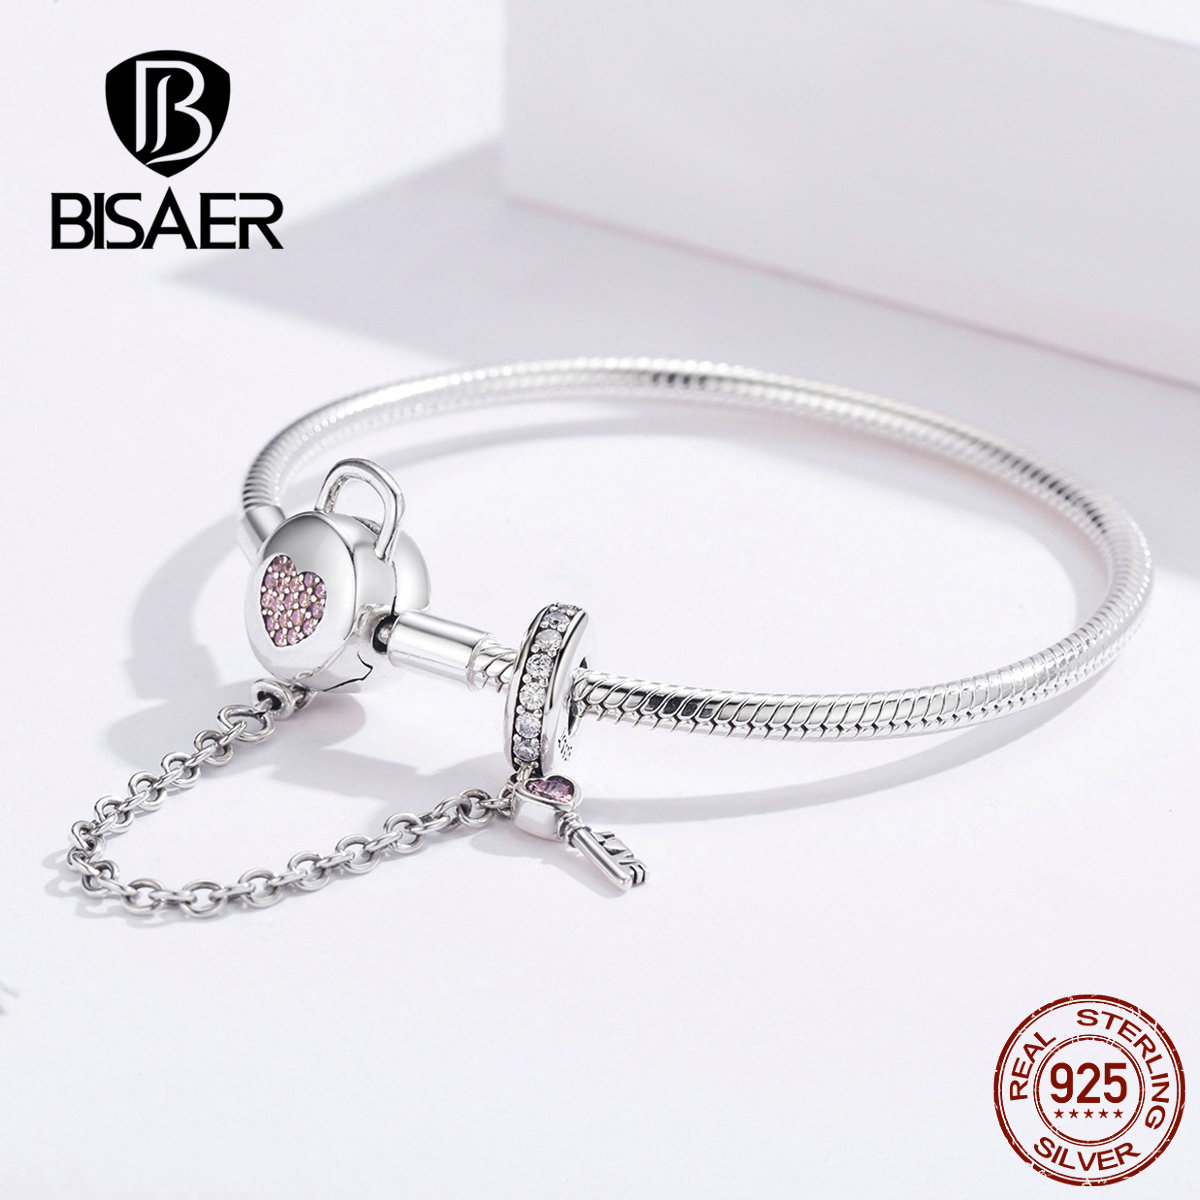 BISAER Trendy Pink Heart Safety Chain <font><b>Bracelet</b></font> <font><b>925</b></font> Sterling Silver Fit Original <font><b>PAN</b></font> Charms Beads Pendants Jewelry Making HSB143 image